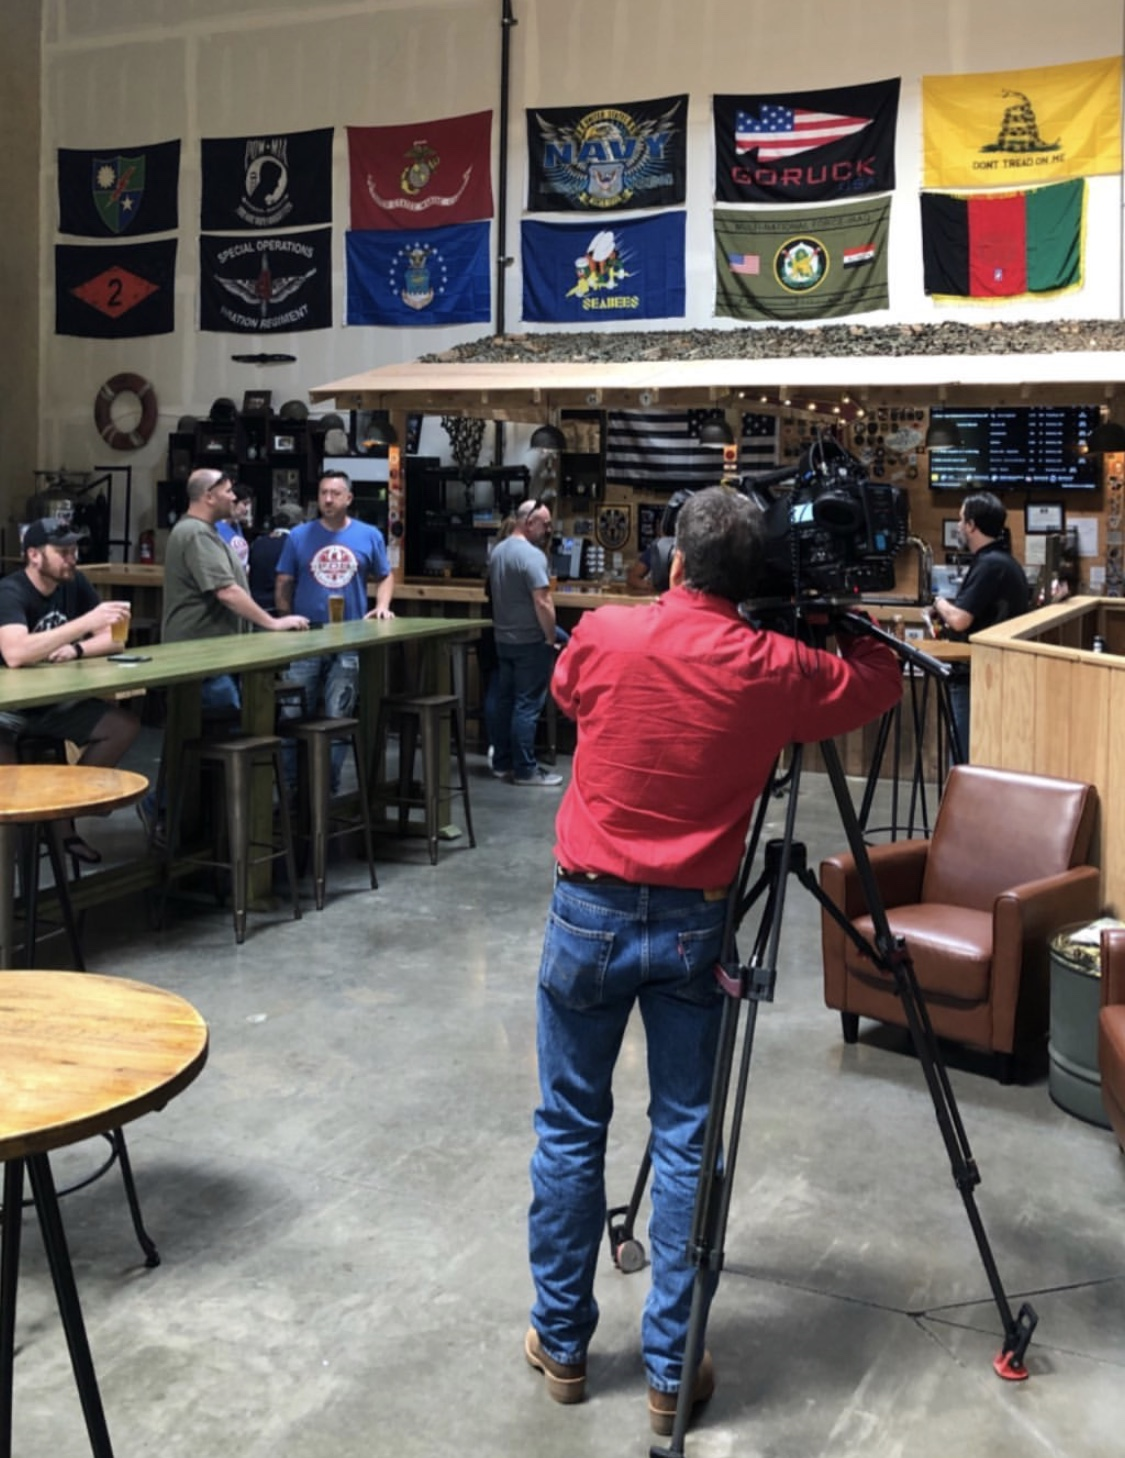 King 5 Evening - Veteran-owned DuPont brewery features taproom, barbershop, tattoo studioF.O.B. Brewing Co. was founded by an Army veteran and is designed to honor those who serve.Author: Kim Holcomb, King 5 EveningPublished: 6:00 PM PDT August 6, 2019